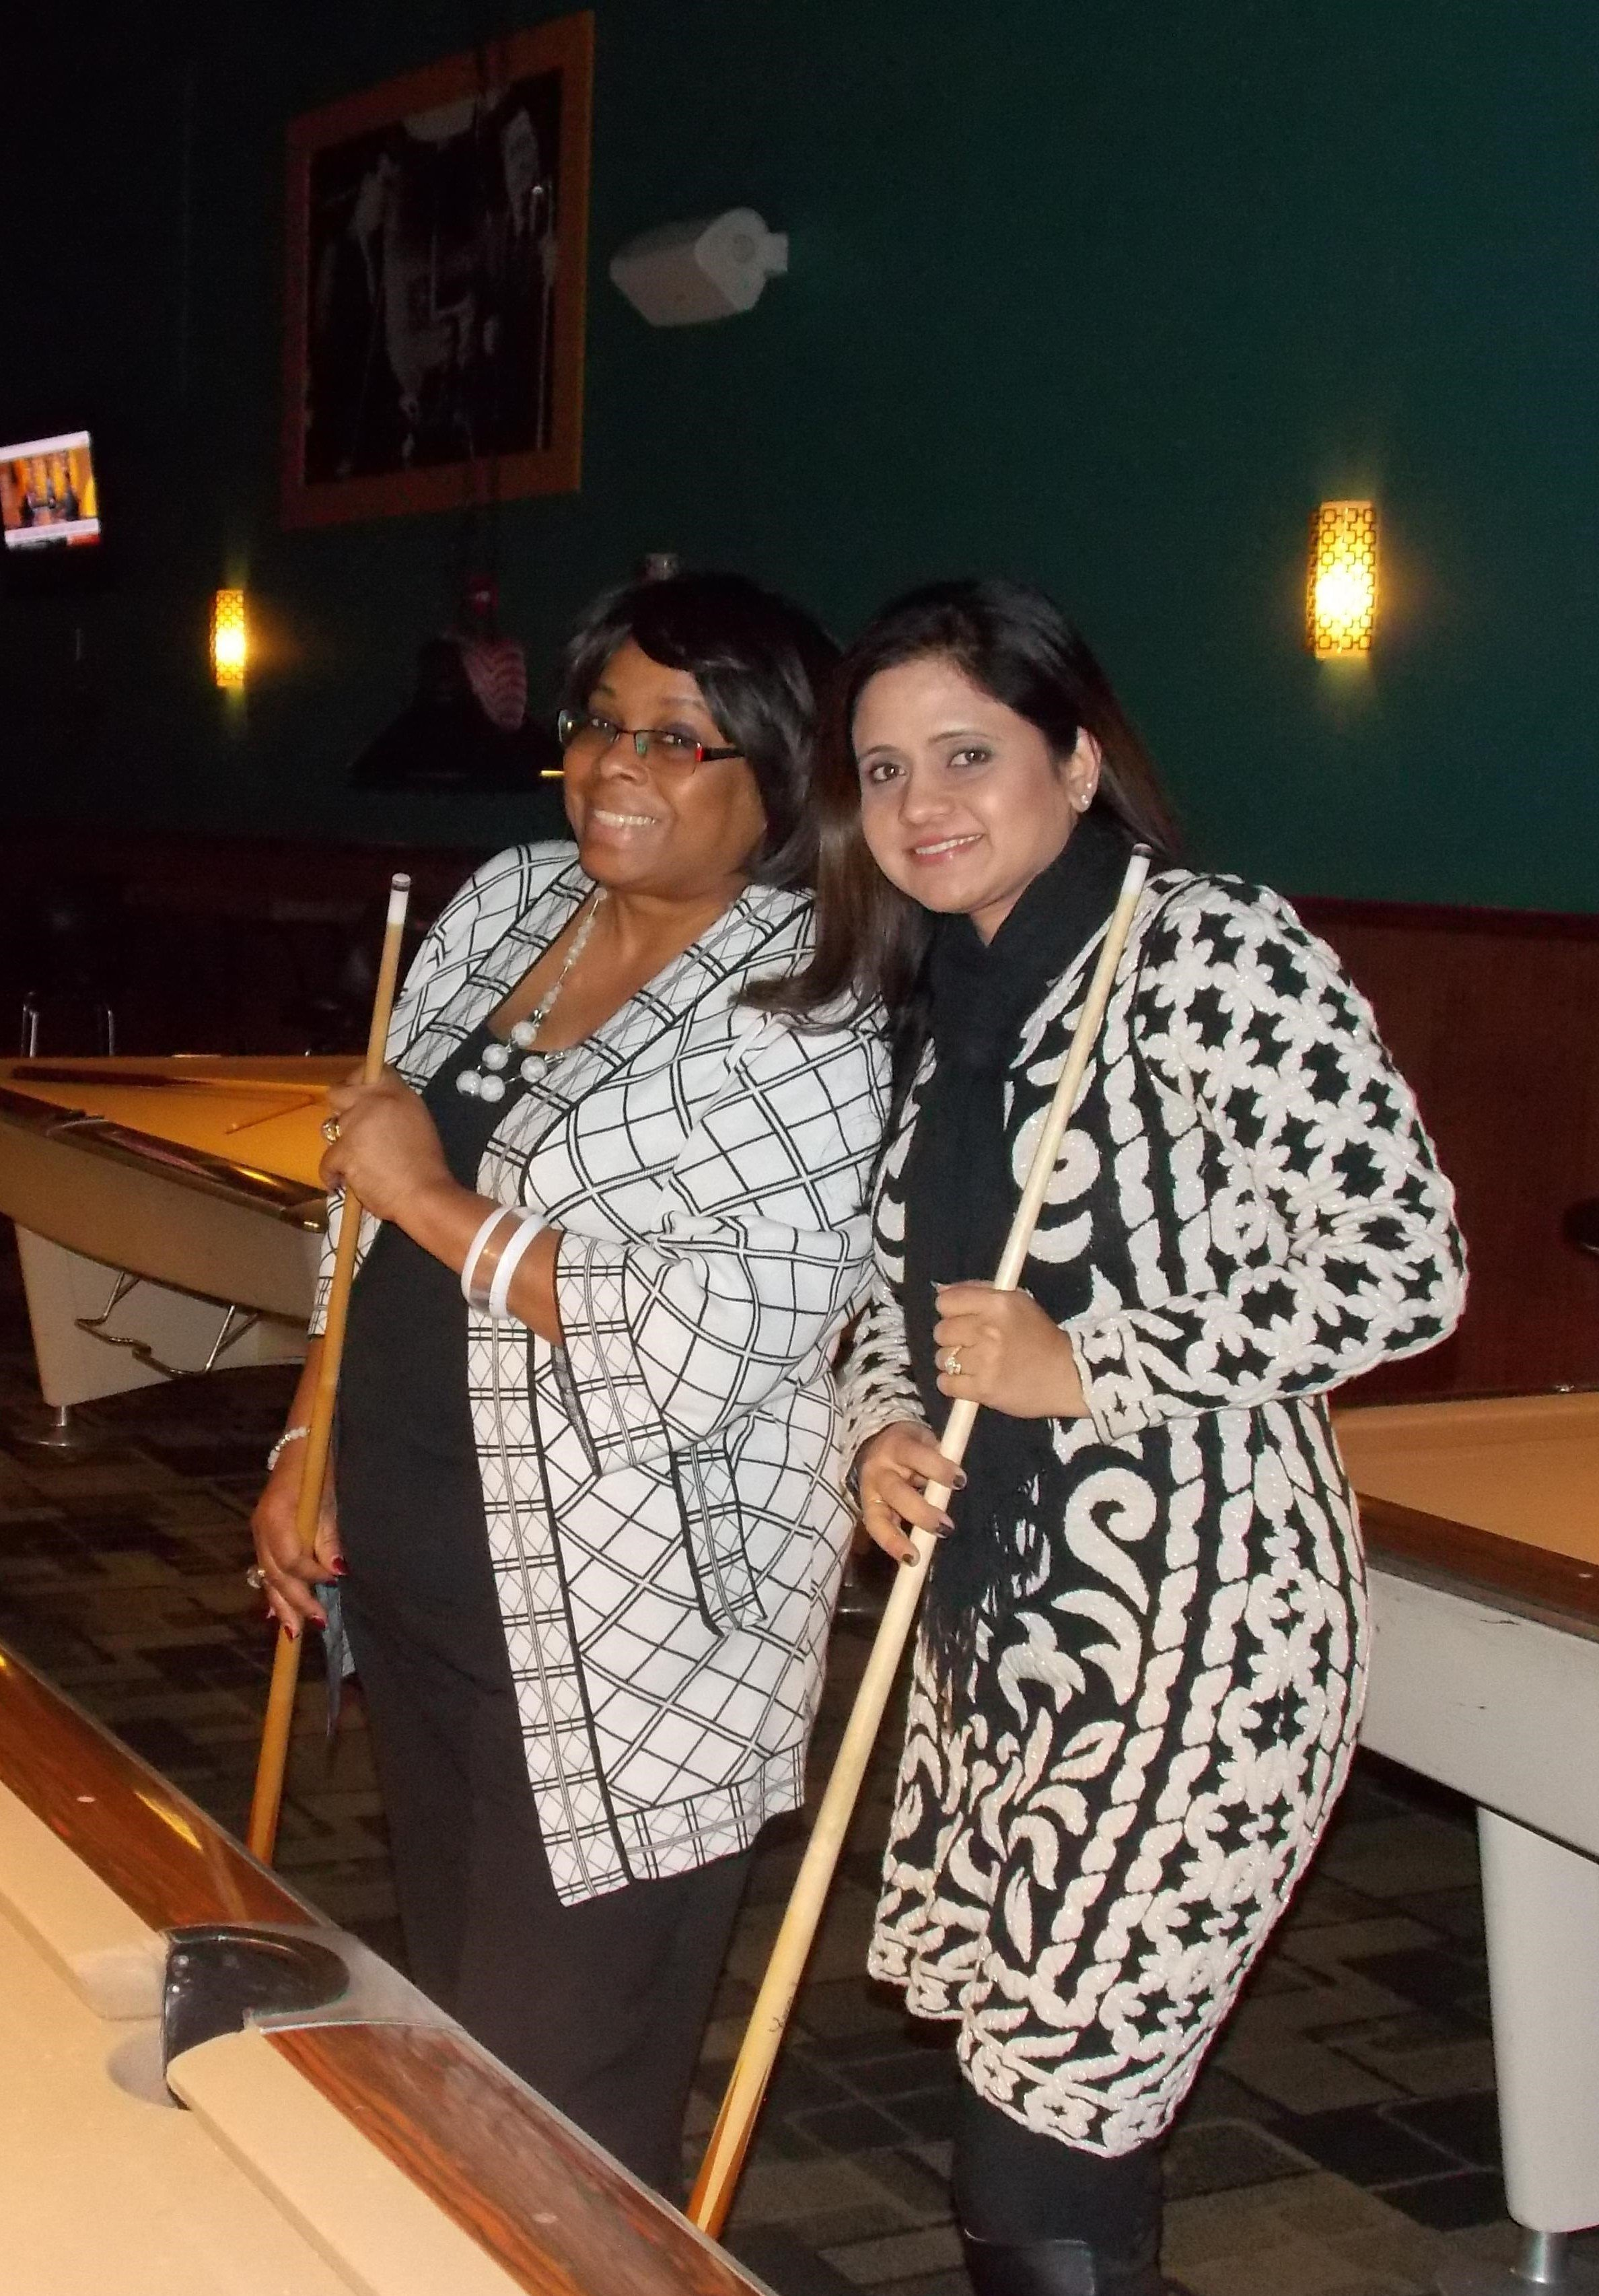 Seniorlink employees smiling while playing a game of pool